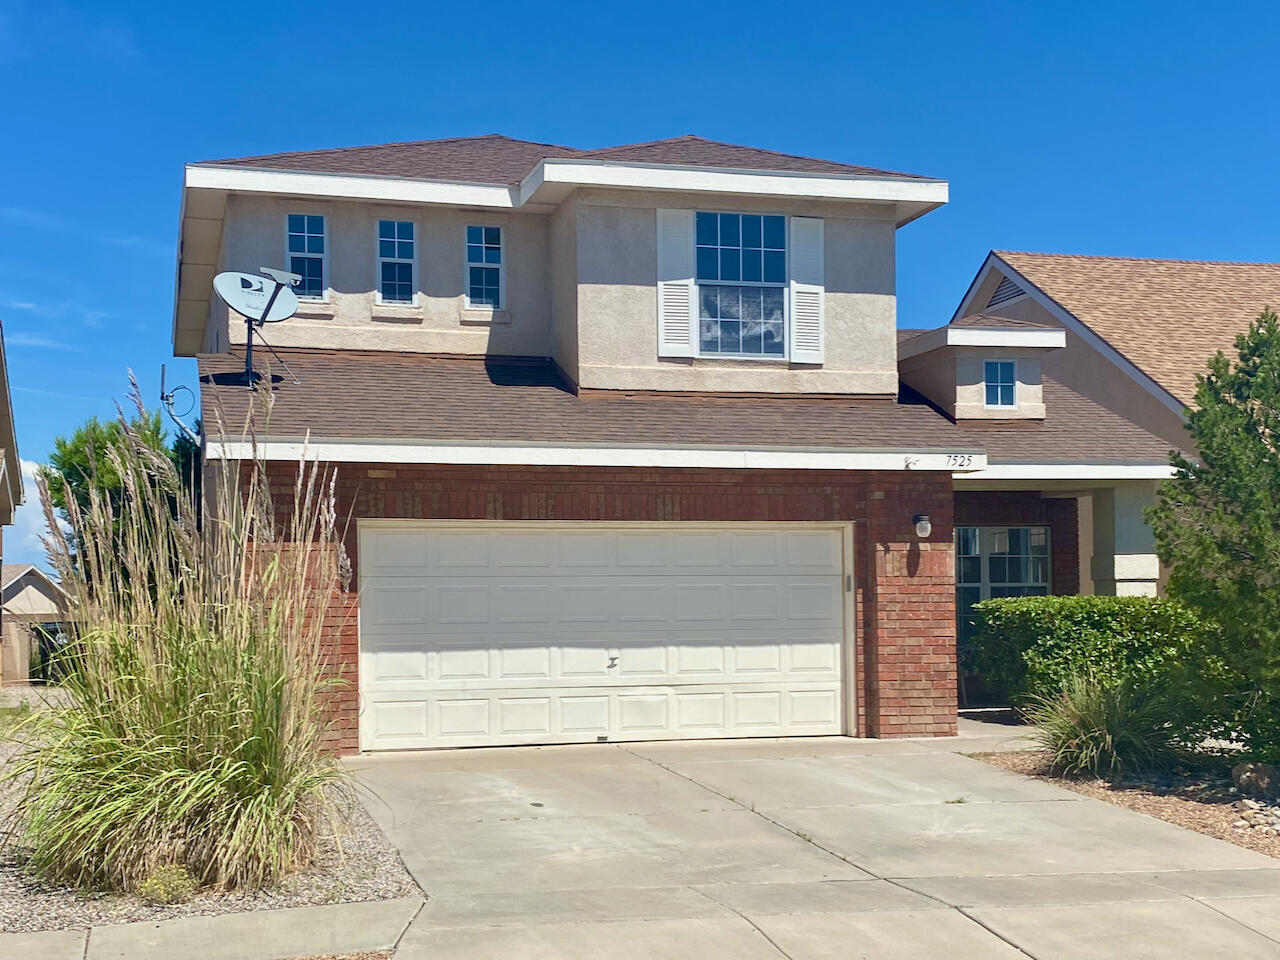 This beautiful Sivage home is move-in ready with tons of natural light, and updates throughout. Features an open floorplan with traditional kitchen, breakfast nook, and family room with half bath downstairs, and three bedrooms with two full baths and loft space upstairs. Ceiling fans throughout along with a beautiful fireplace in the family room make this home inviting and comfortable for relaxing.  A part of the Ventana Ranch community, it's just minutes away from the private community center, pool, and many convenient parks. Updates throughout include new cold refrigerated air conditioner and energy efficient furnace, brand new water heater, new garage door motor, new carpet and luxury vinyl floors, and new paint. Includes washer/dryer! Schedule your showing today!